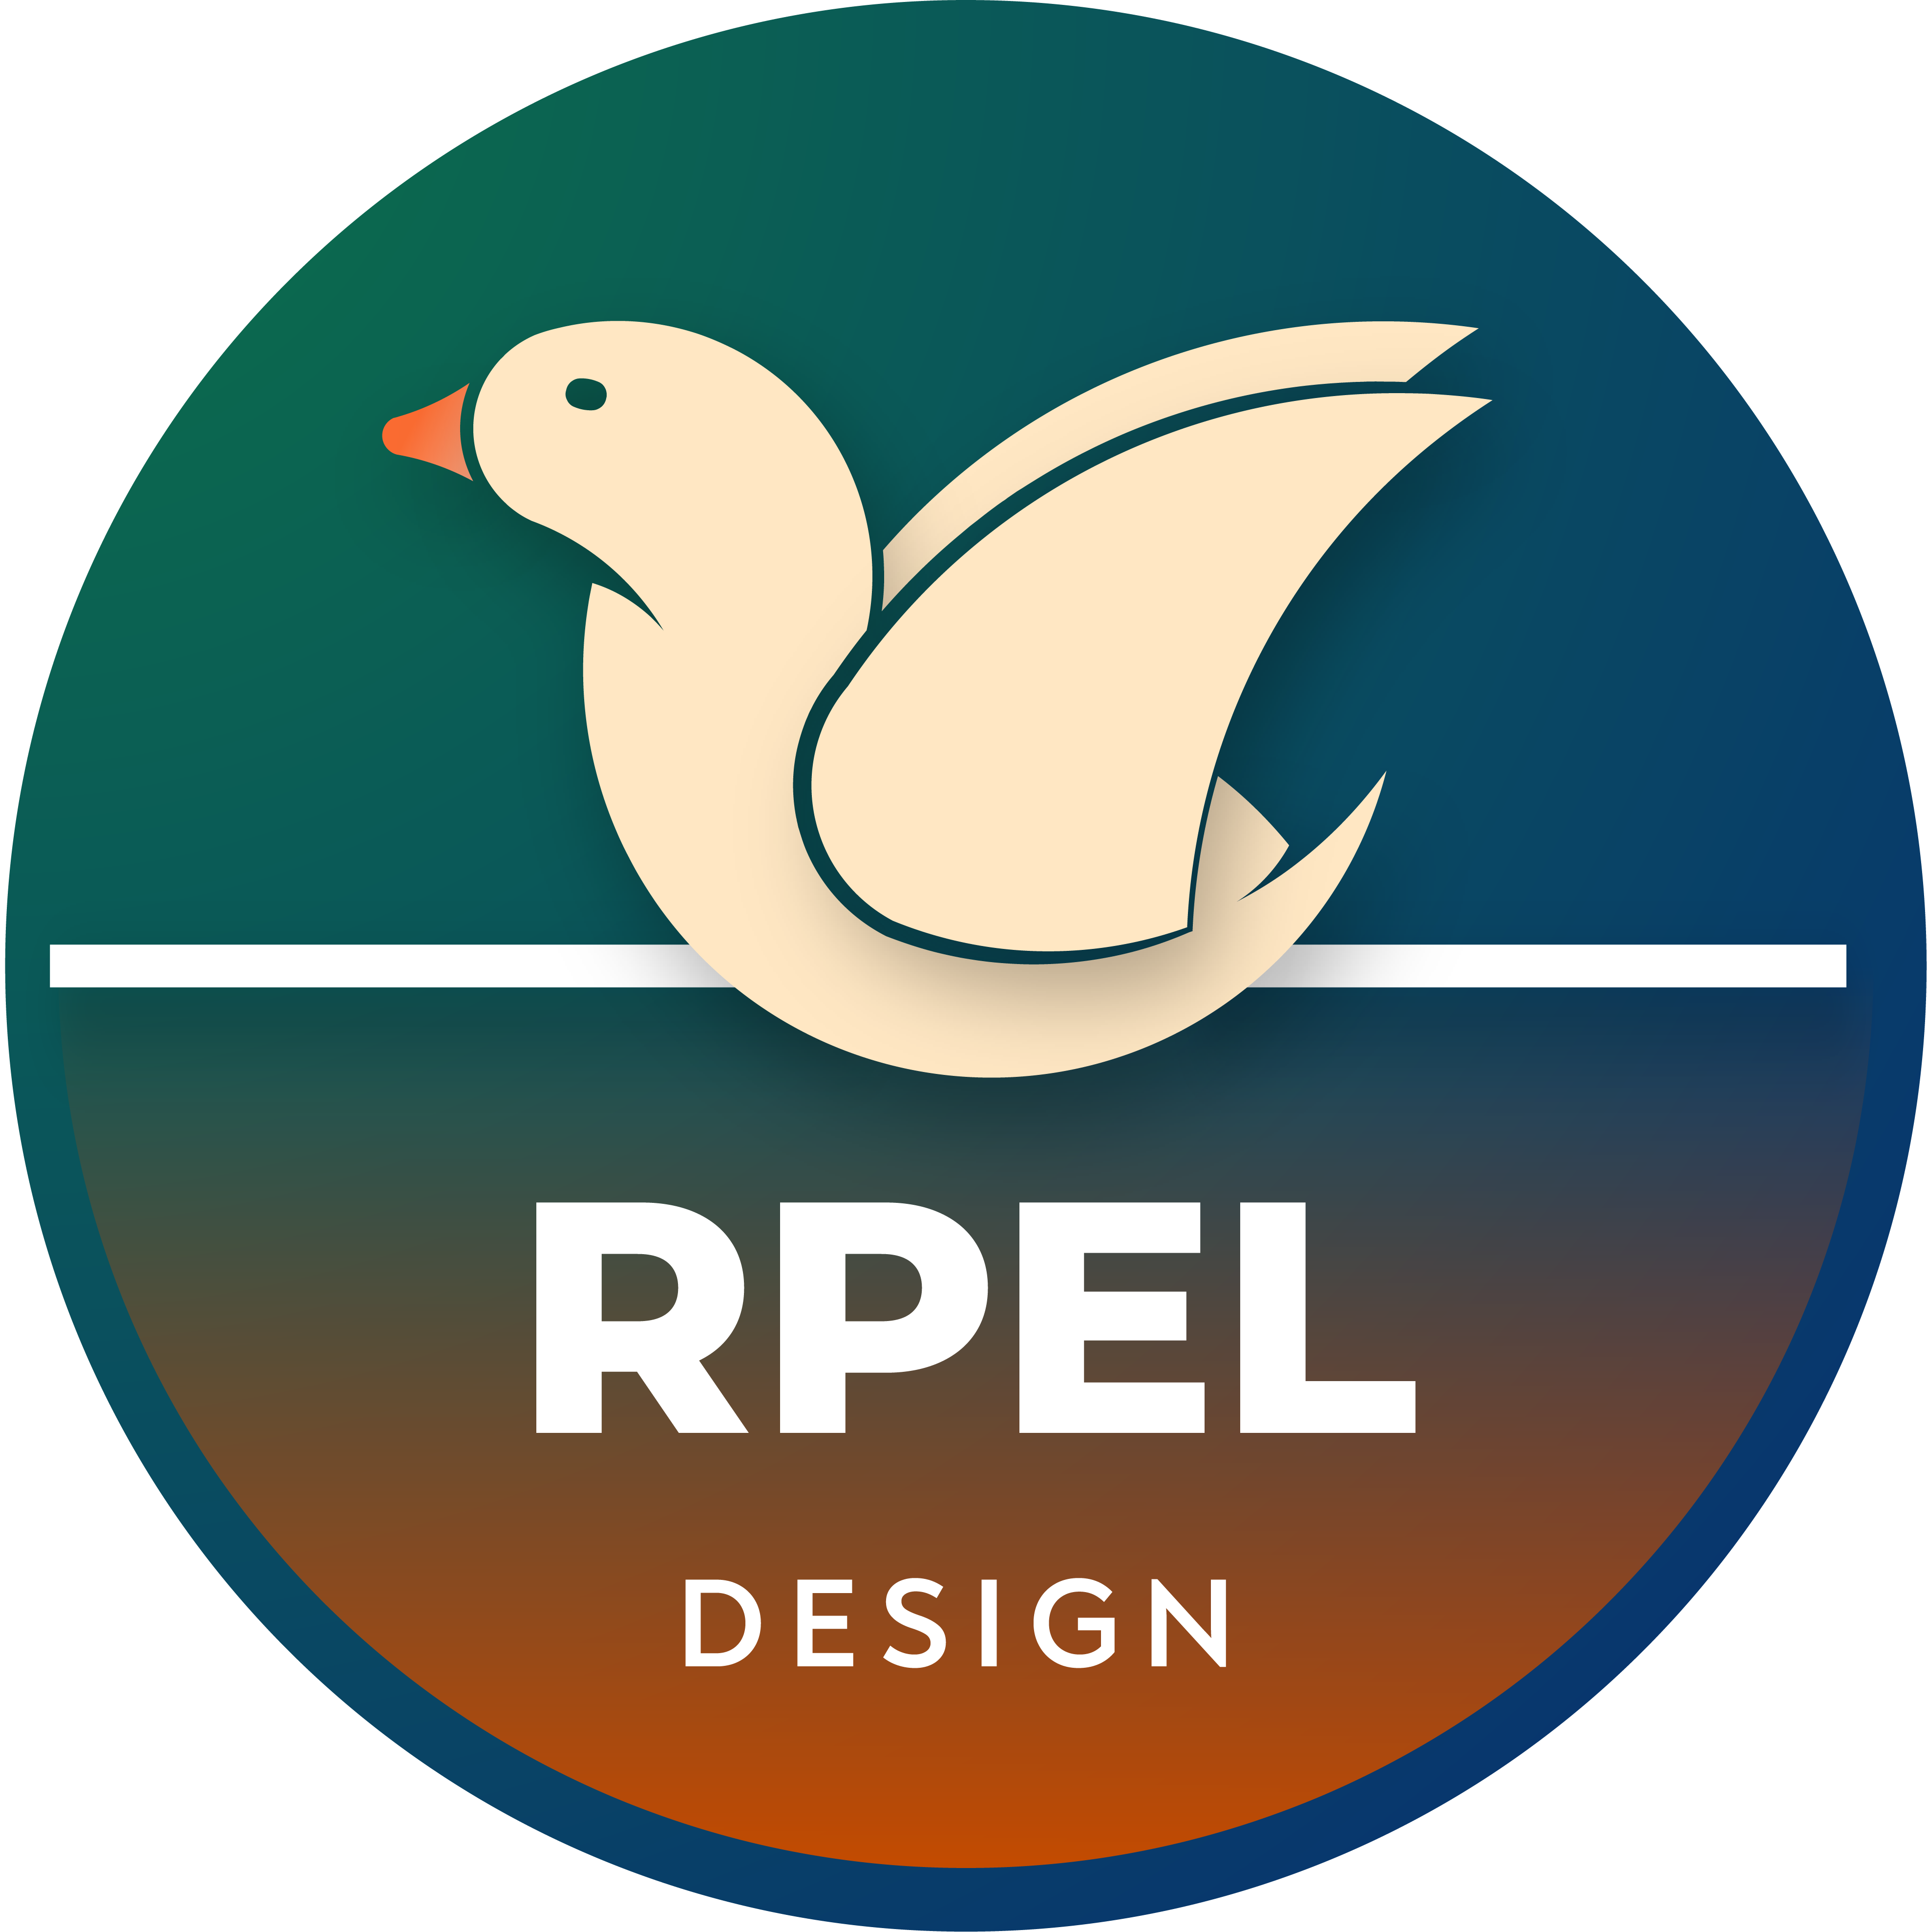 Circular logo of the design branche of the RPEL GmbH (beige drake with orange beak and orange fadeout)